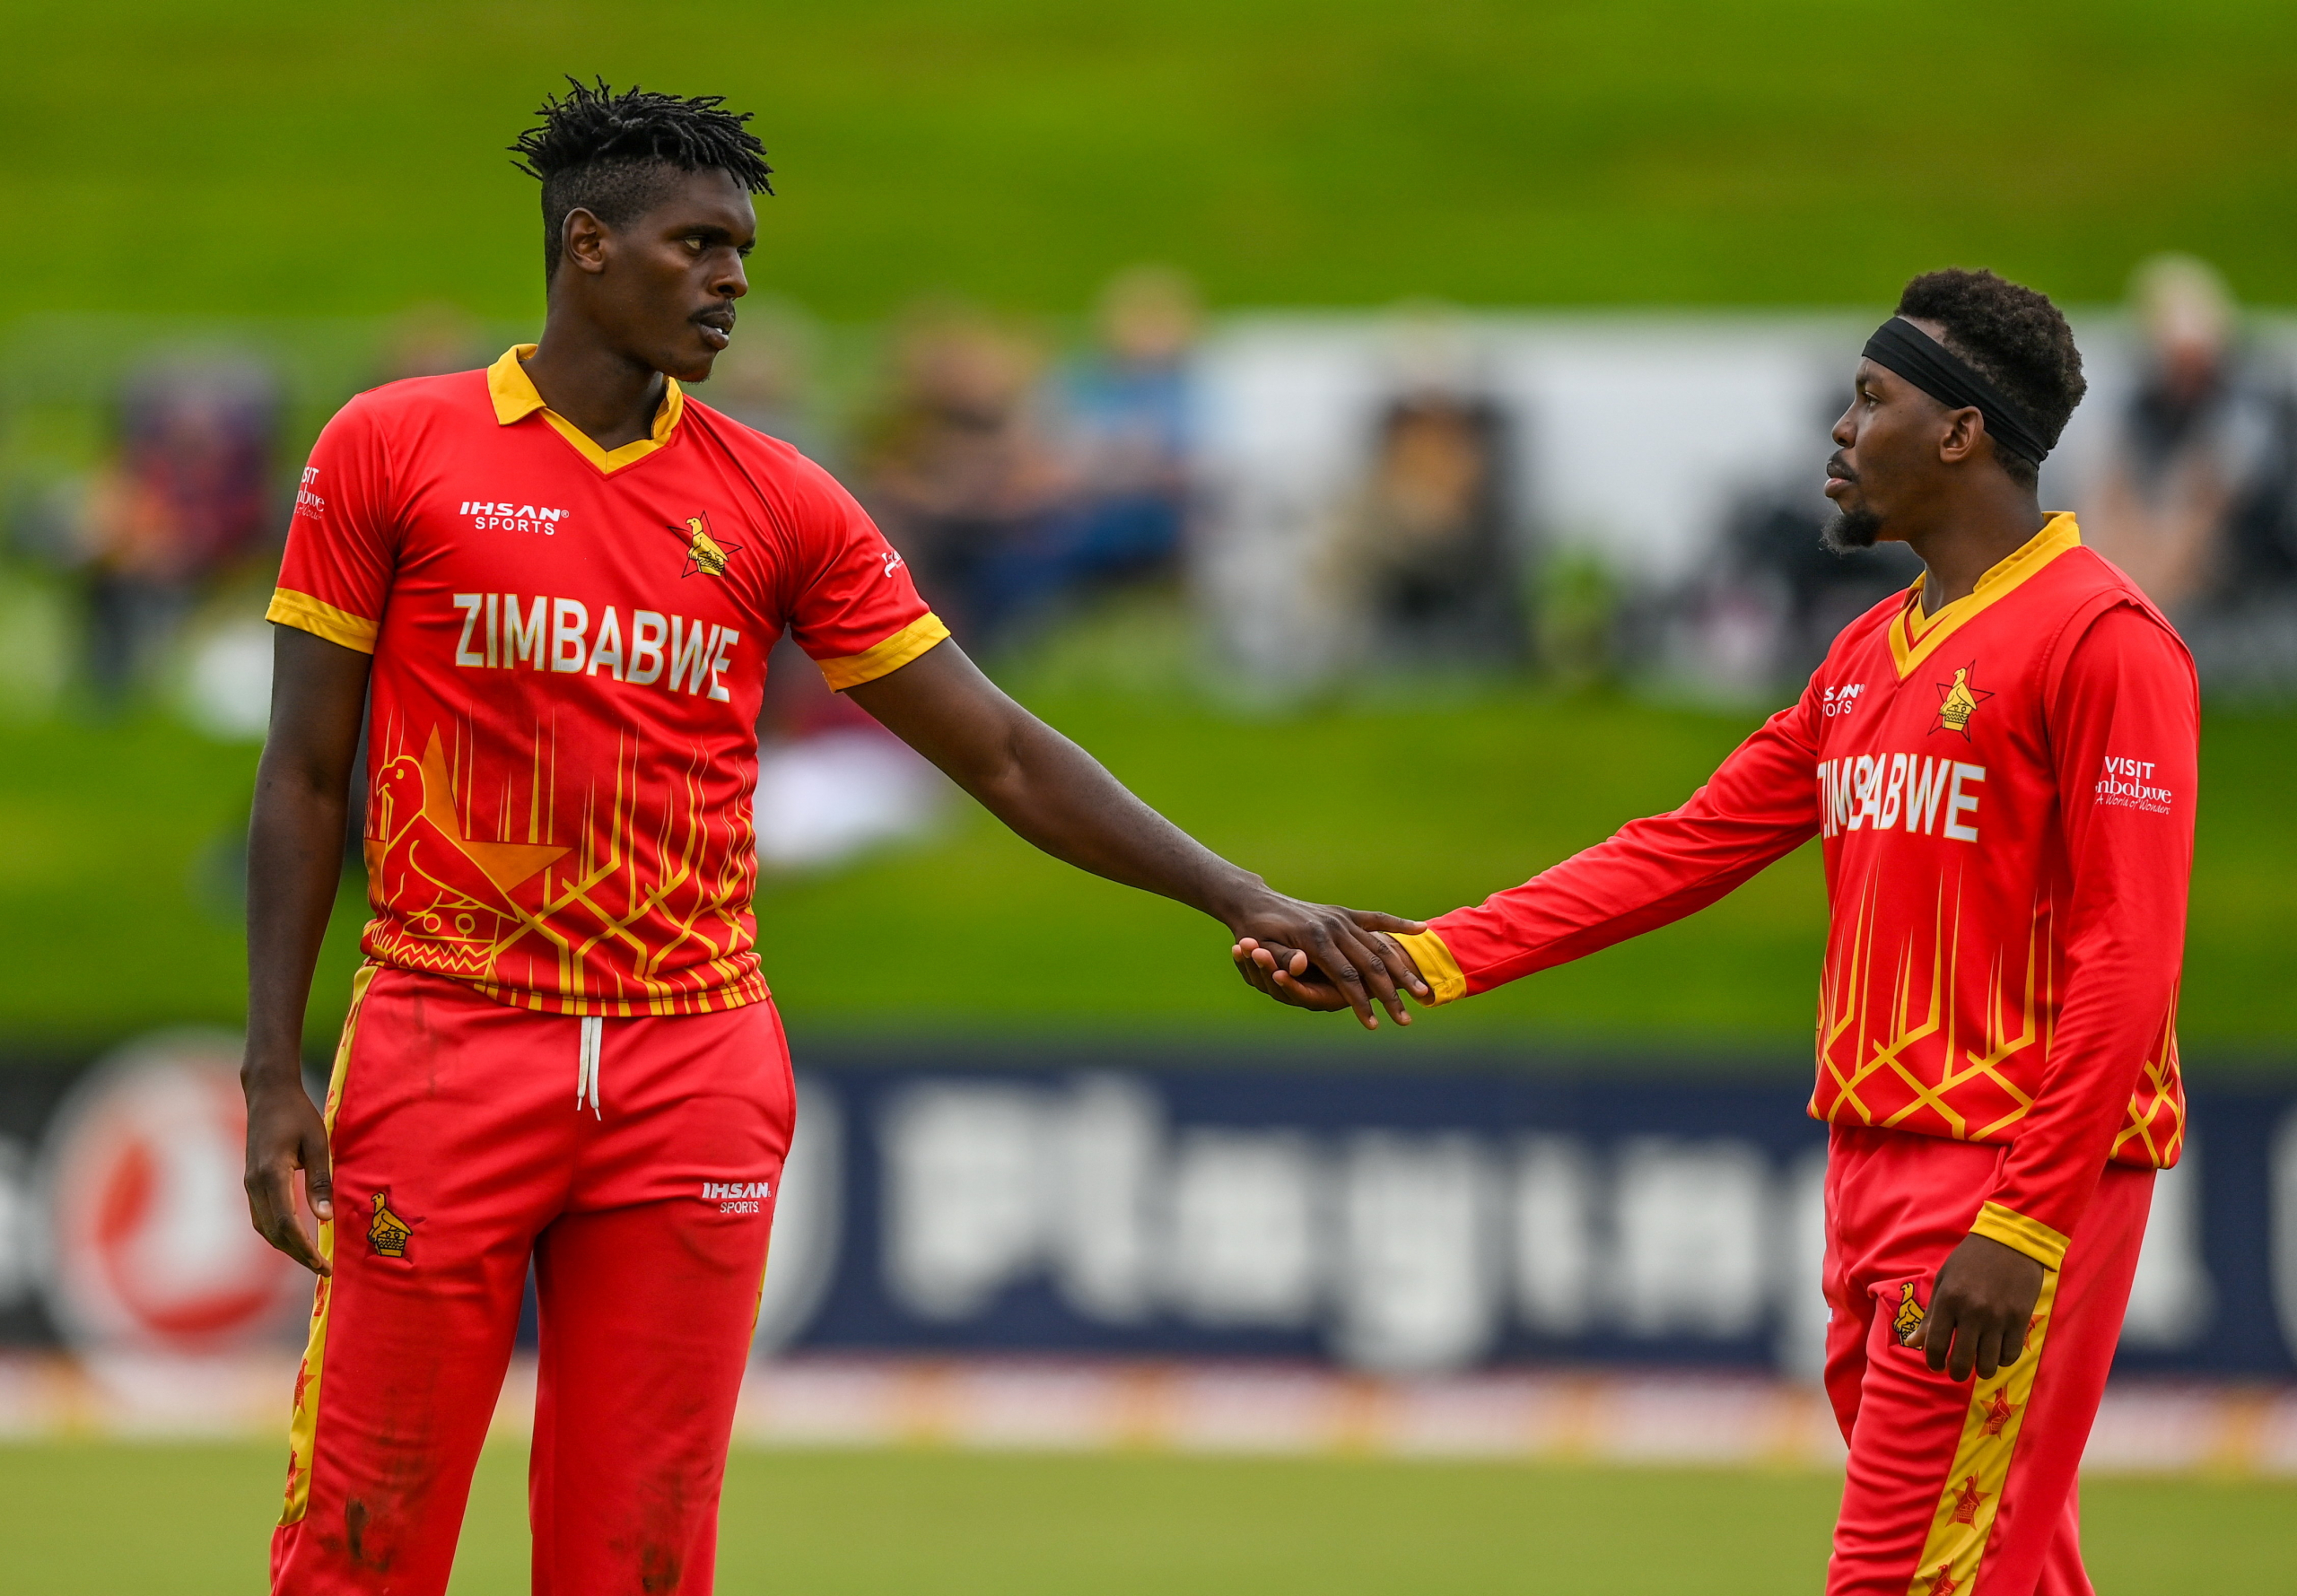 The most successful bowler was Masakadza, who took two for 22 off his four overs, while Ngarava and Jongwe took a wicket each.